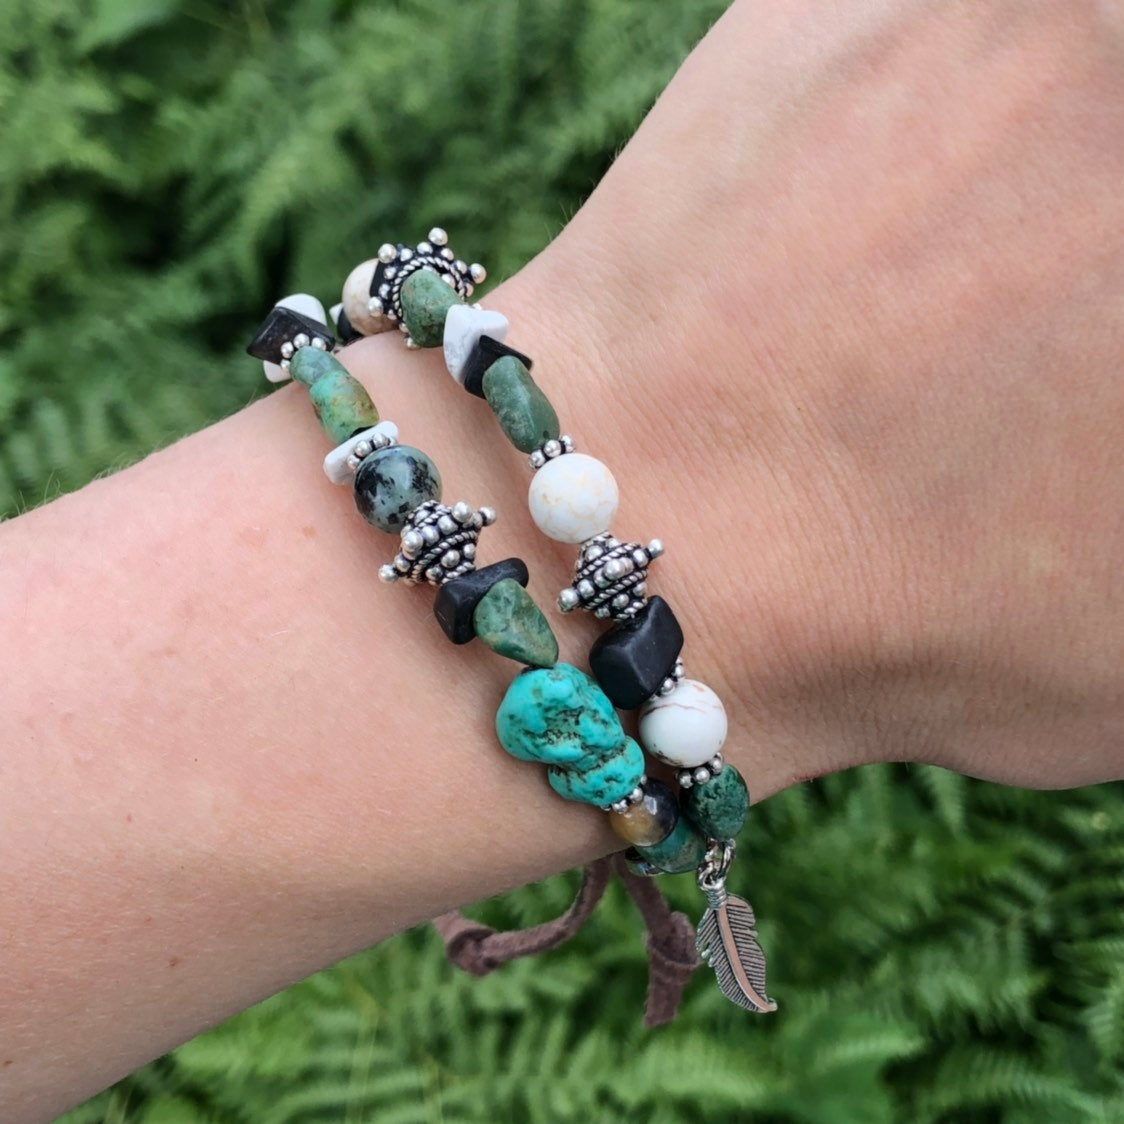 Turquoise Beaded Bracelet / Stacker Gemstone Bracelet / Raw Genuine Natural Turquoise / Leather Bracelet / Sterling Silver / Feather Charm